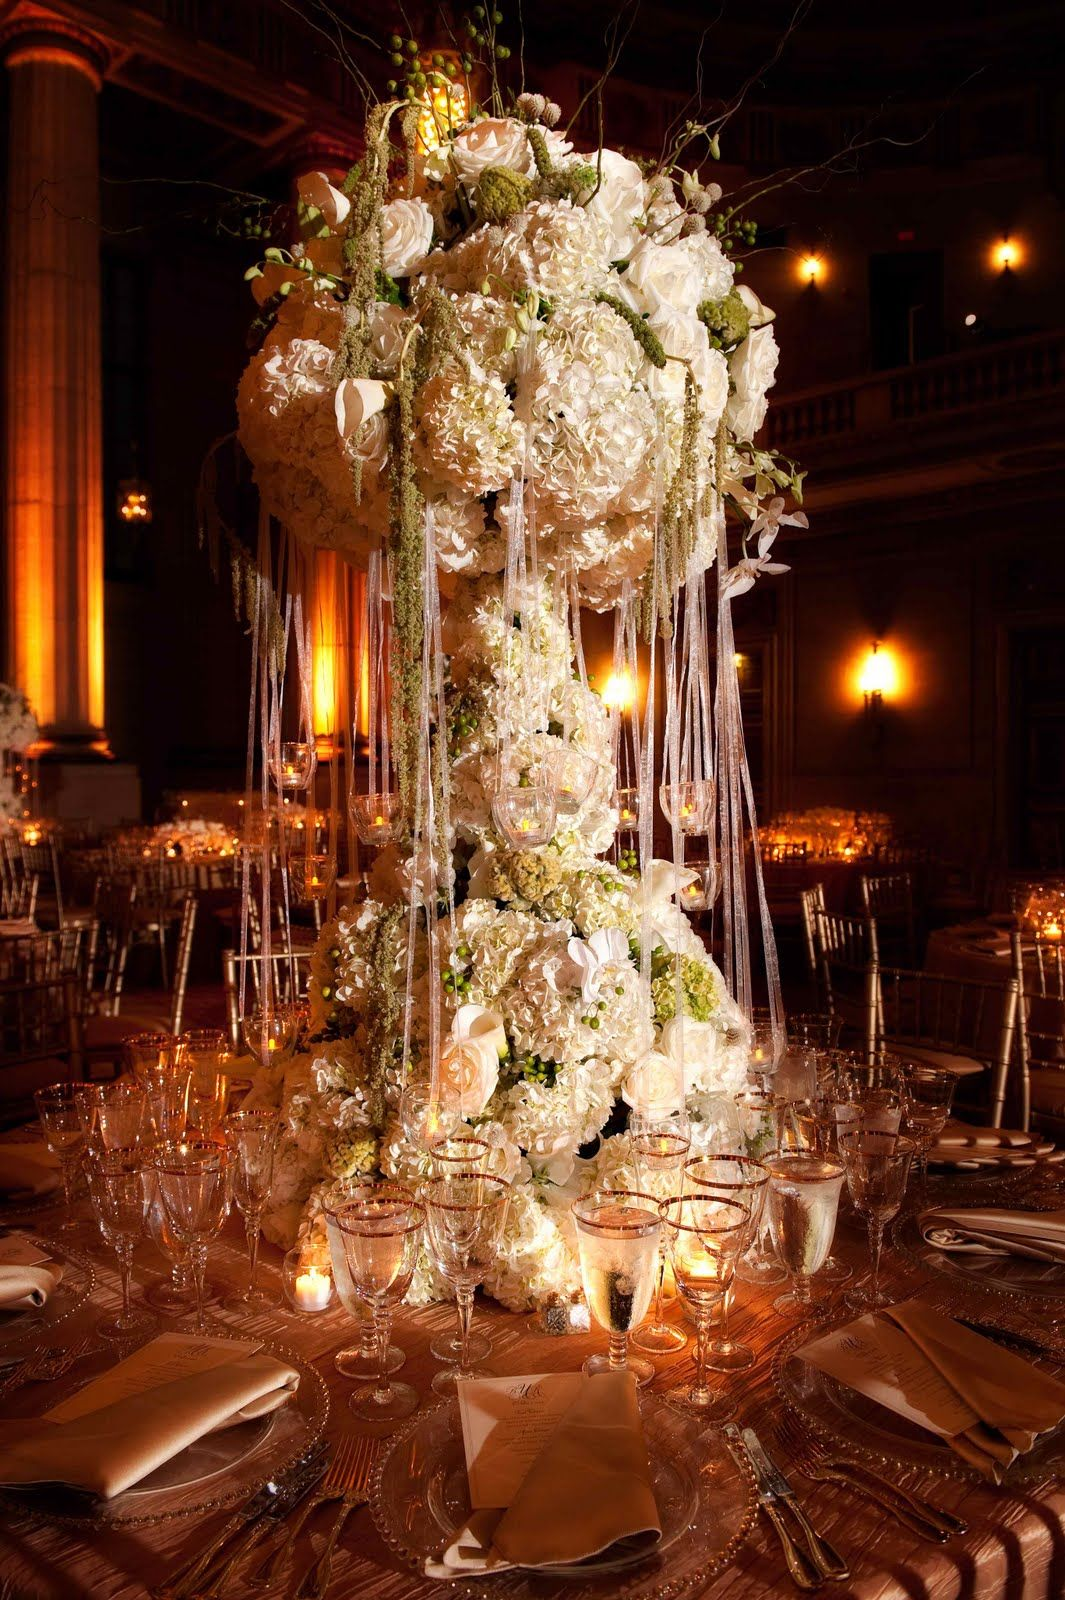 Decorations Tips Tall Wedding Centerpieces With Pink Flowers Ribbon And Other Accents Designing On A Budget